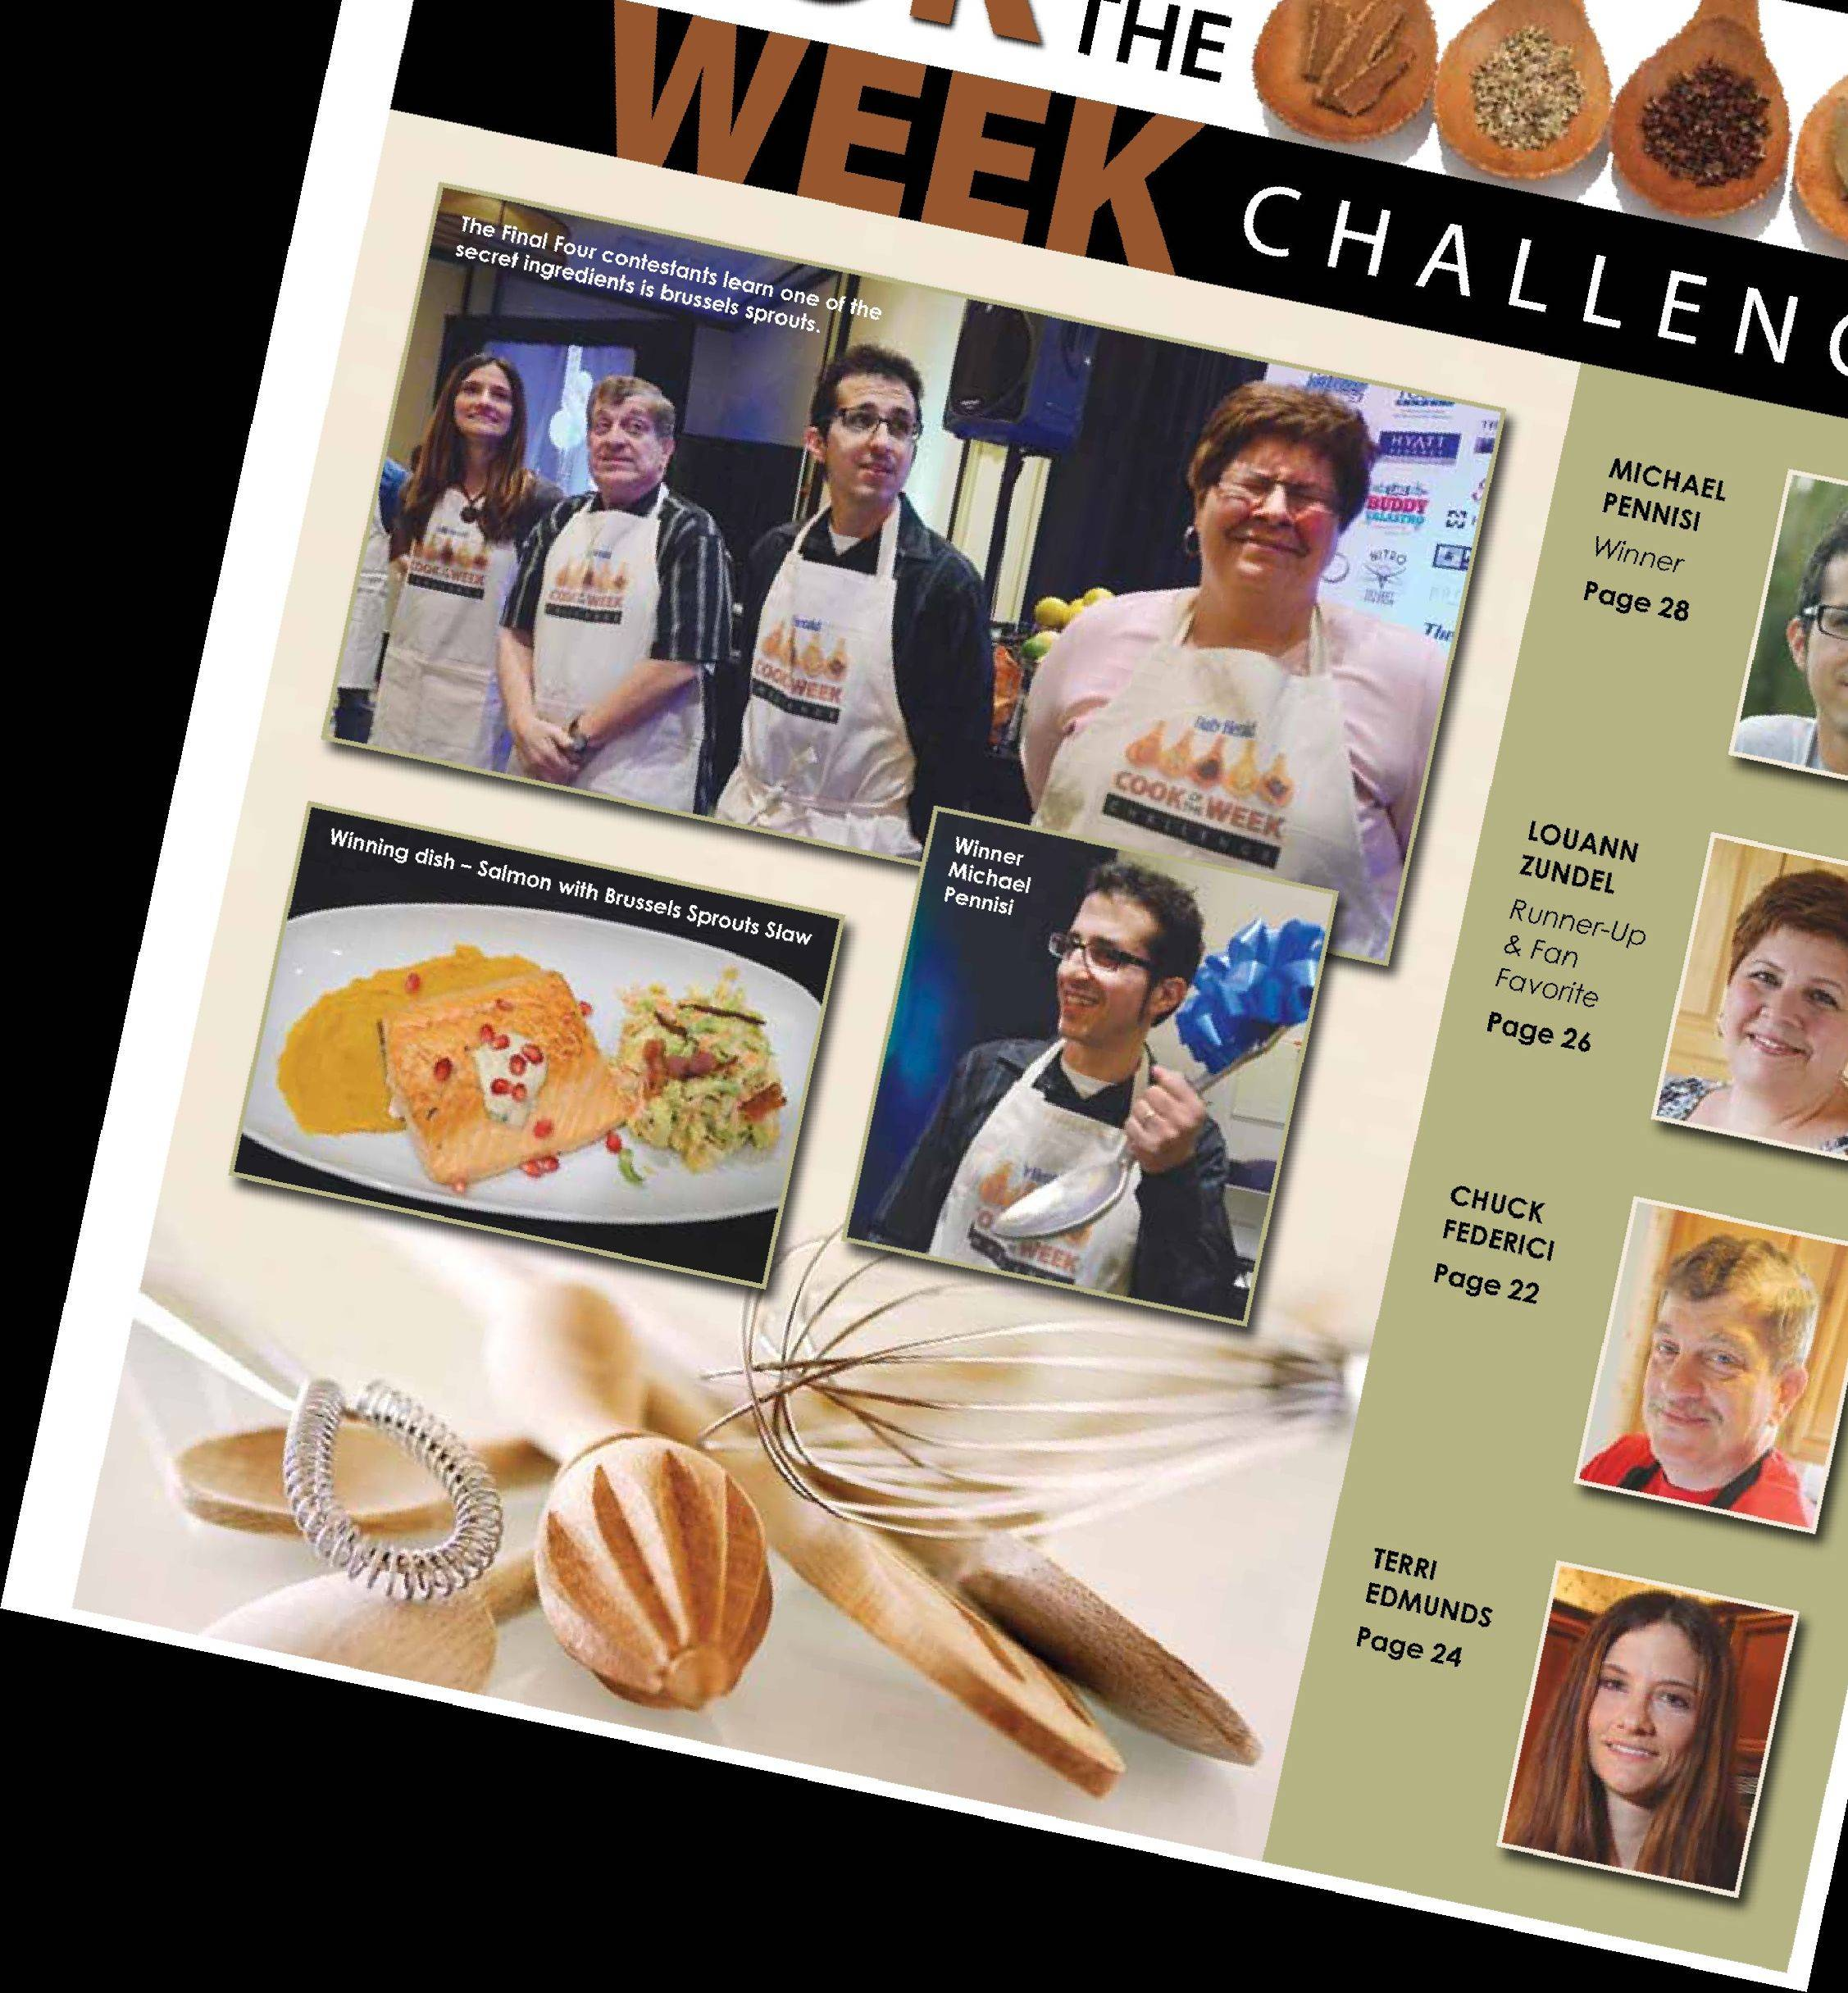 Cook of the Week Challenge winner Michael Pennisi's salmon dish will be featured in the special section that publishes Nov. 21.